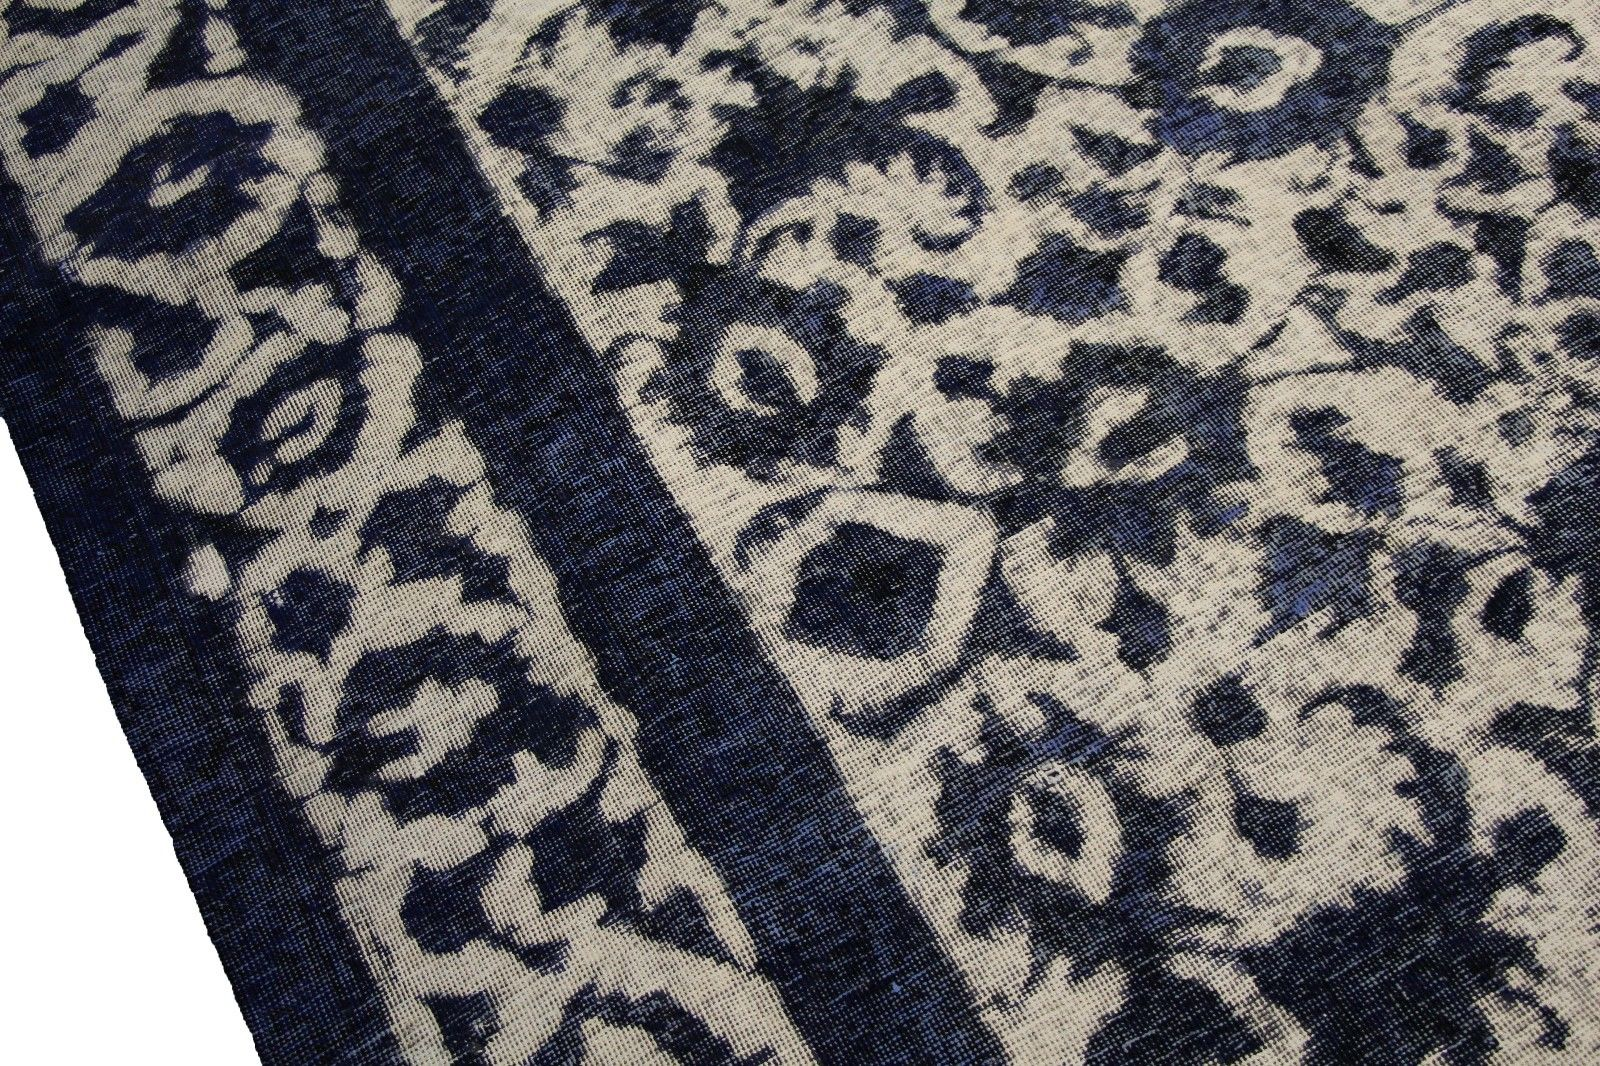 9x13 Distressed Vintage Rug Low Pile 100% Wool One of a kind 2903 - west of hudson